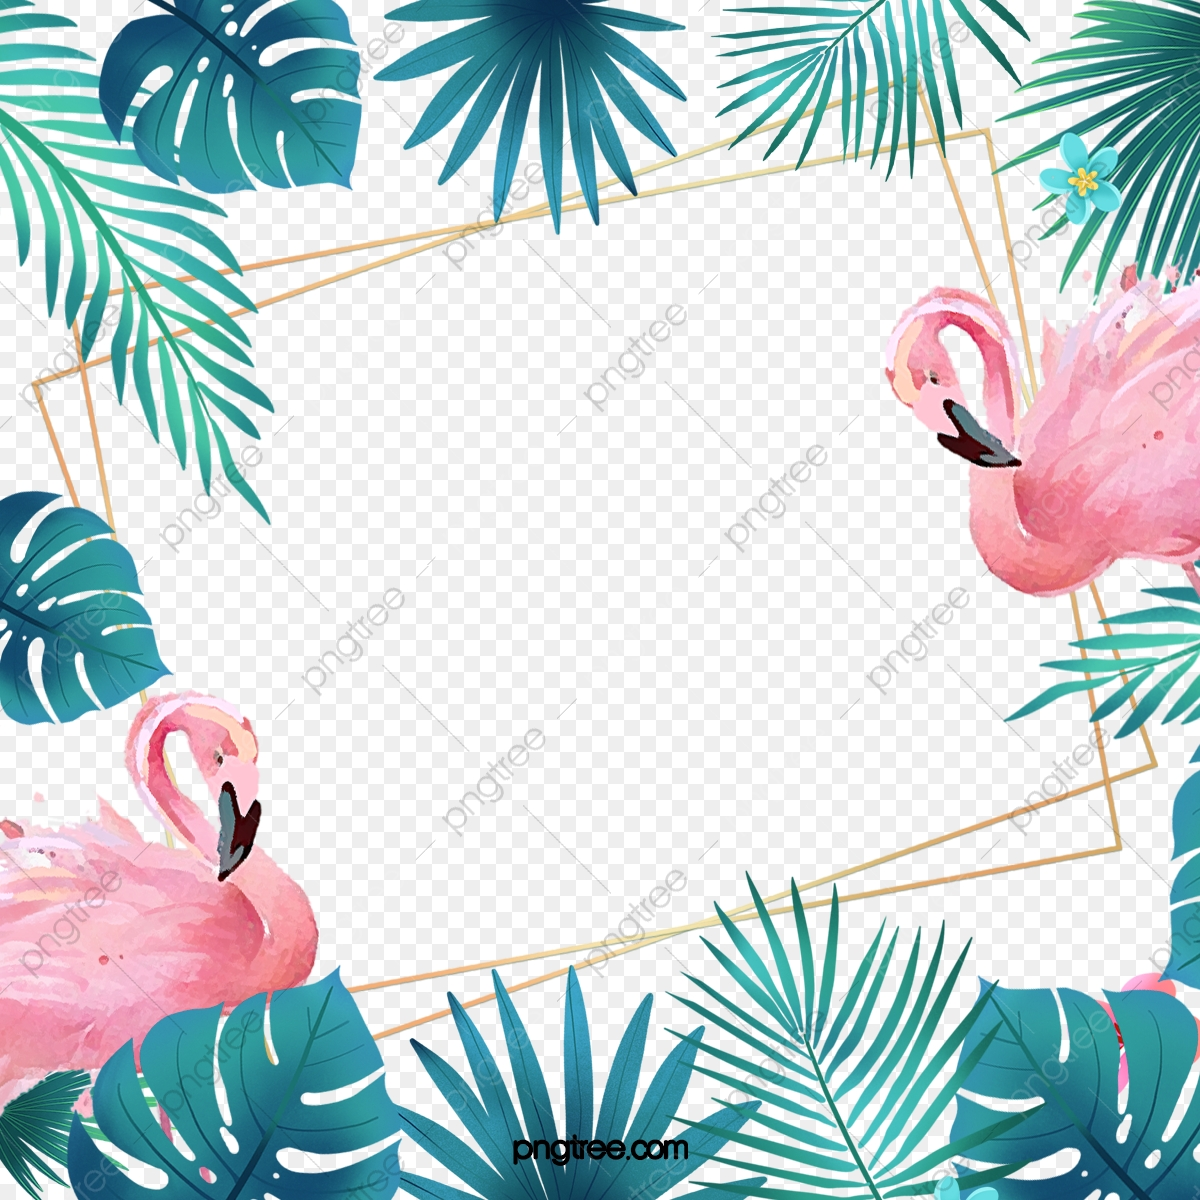 pngtree hand painted flamingo monstera creative border png image 5363339